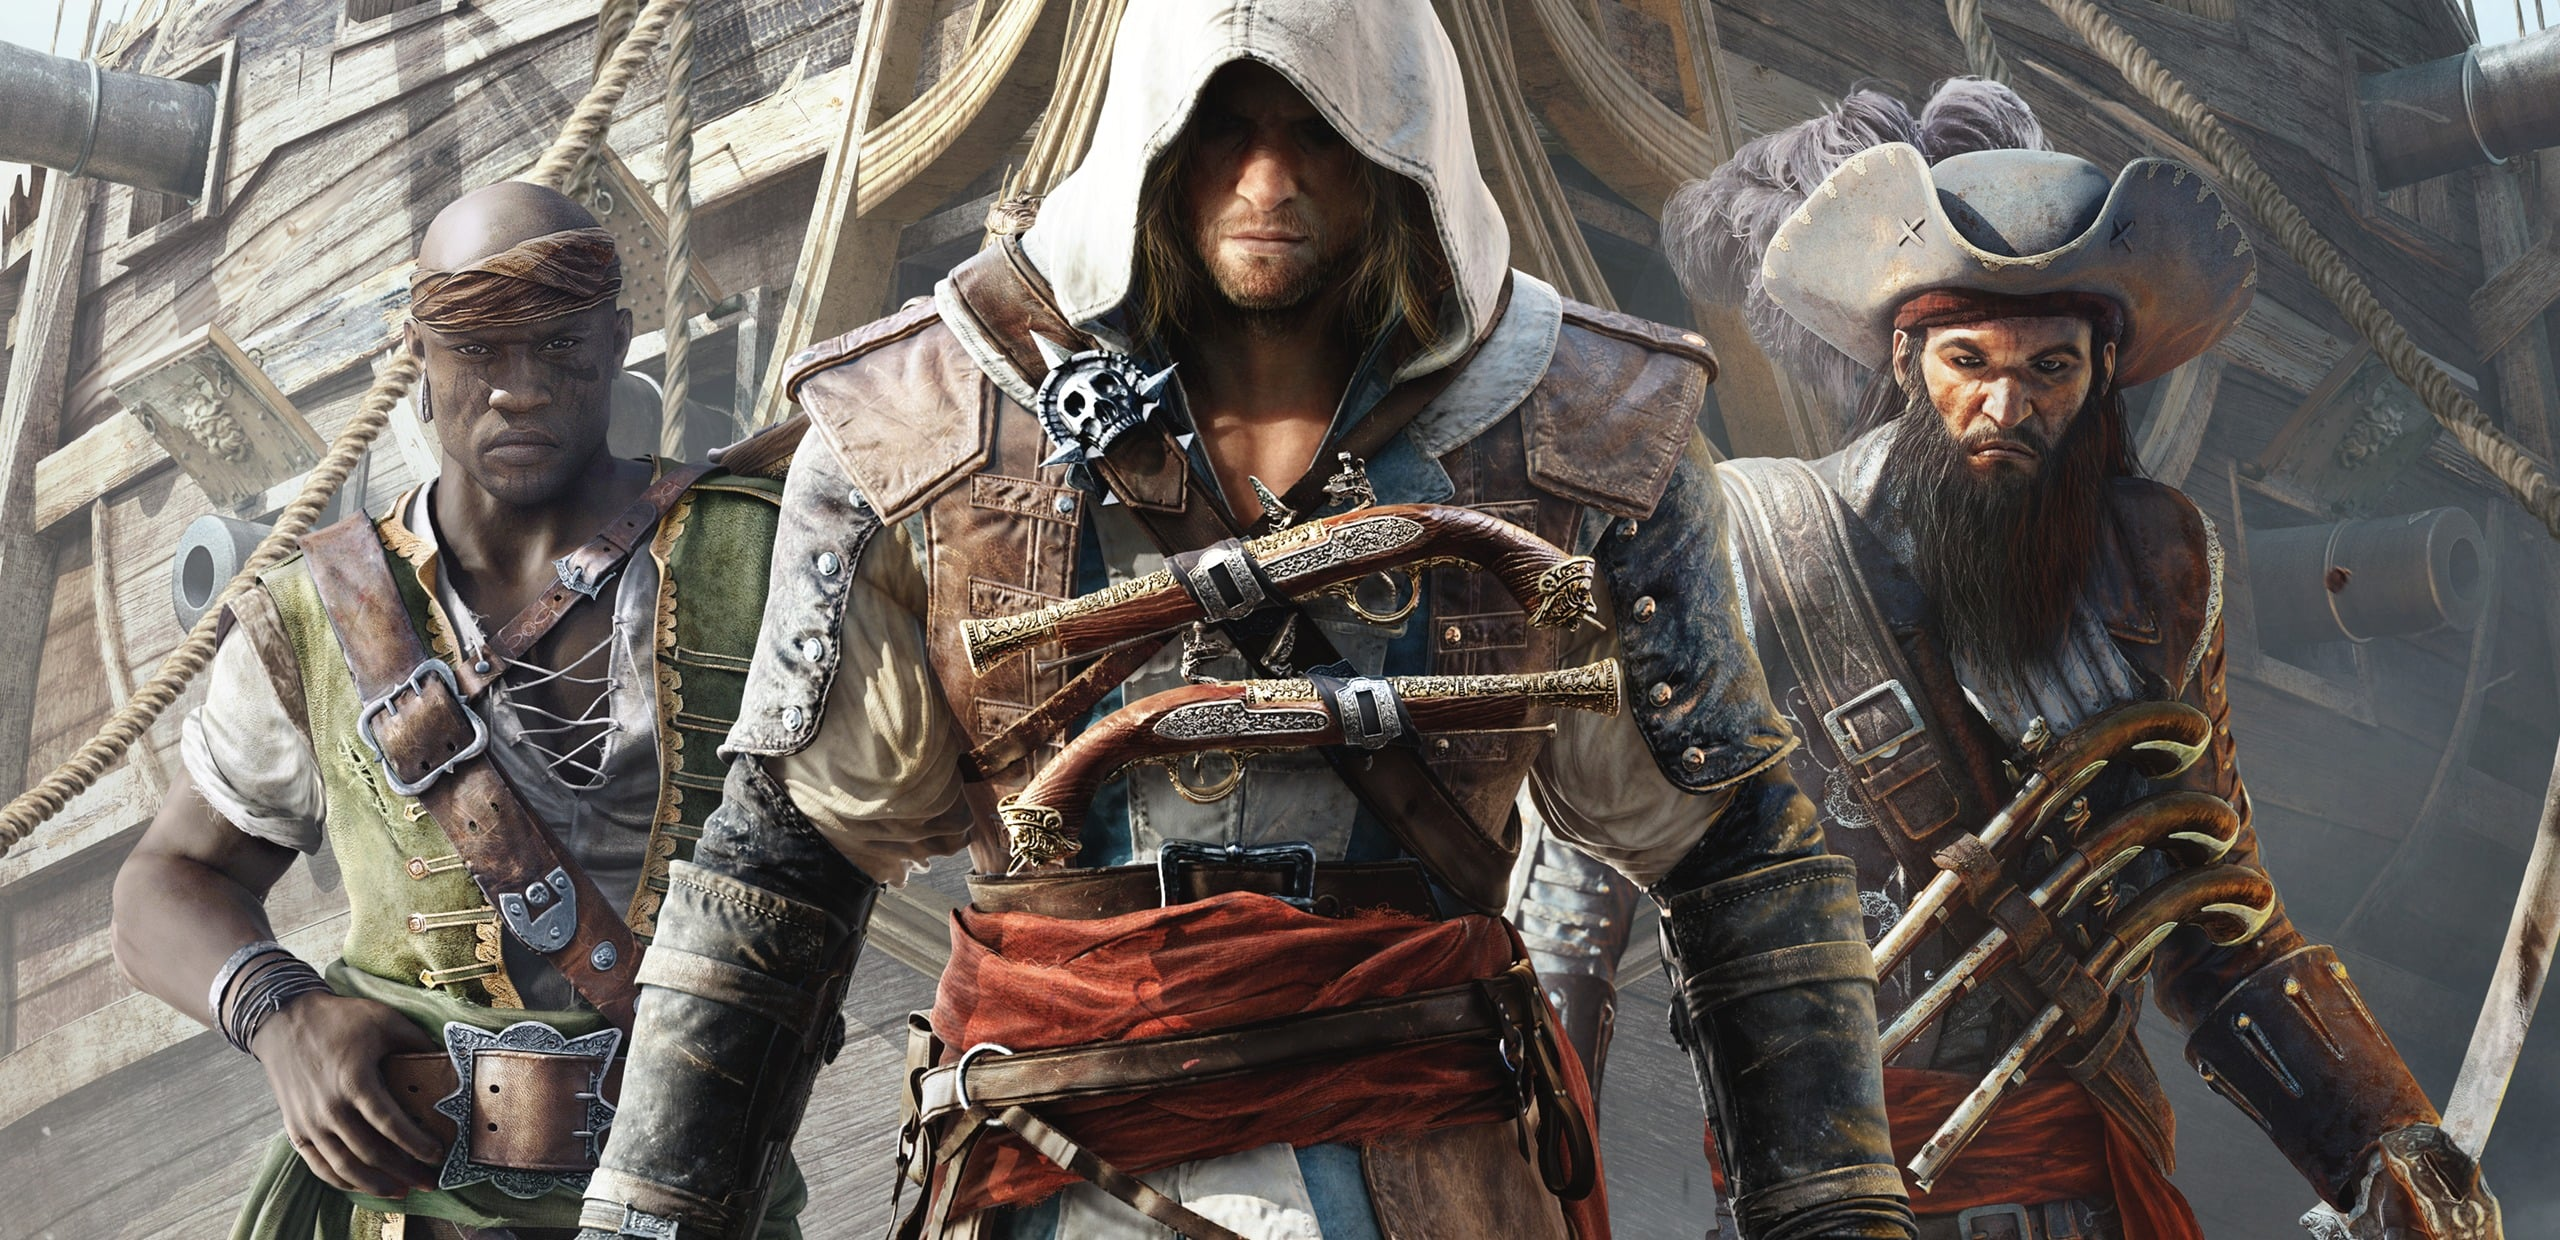 AT_ASSASINS_CREED_Black_Flag_detail_img_03